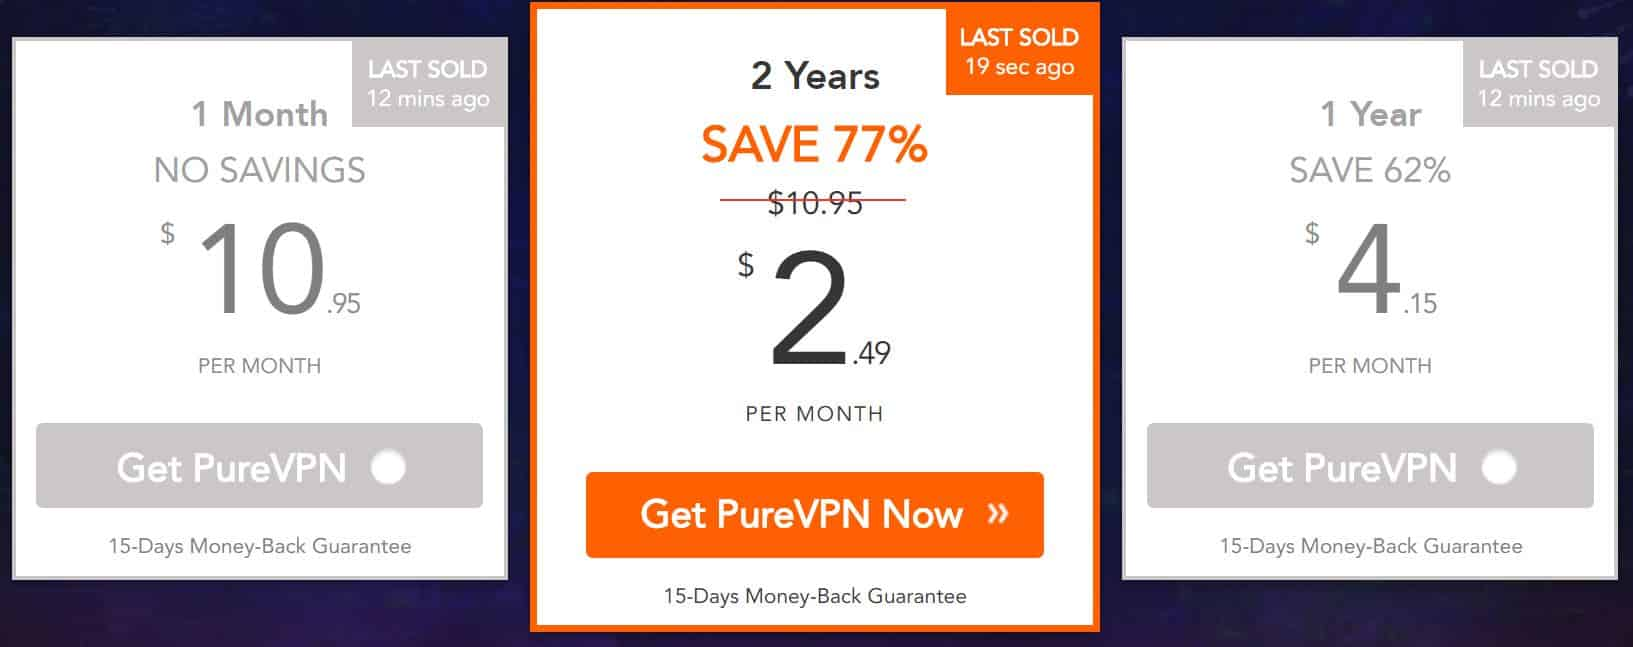 purevpn-prices